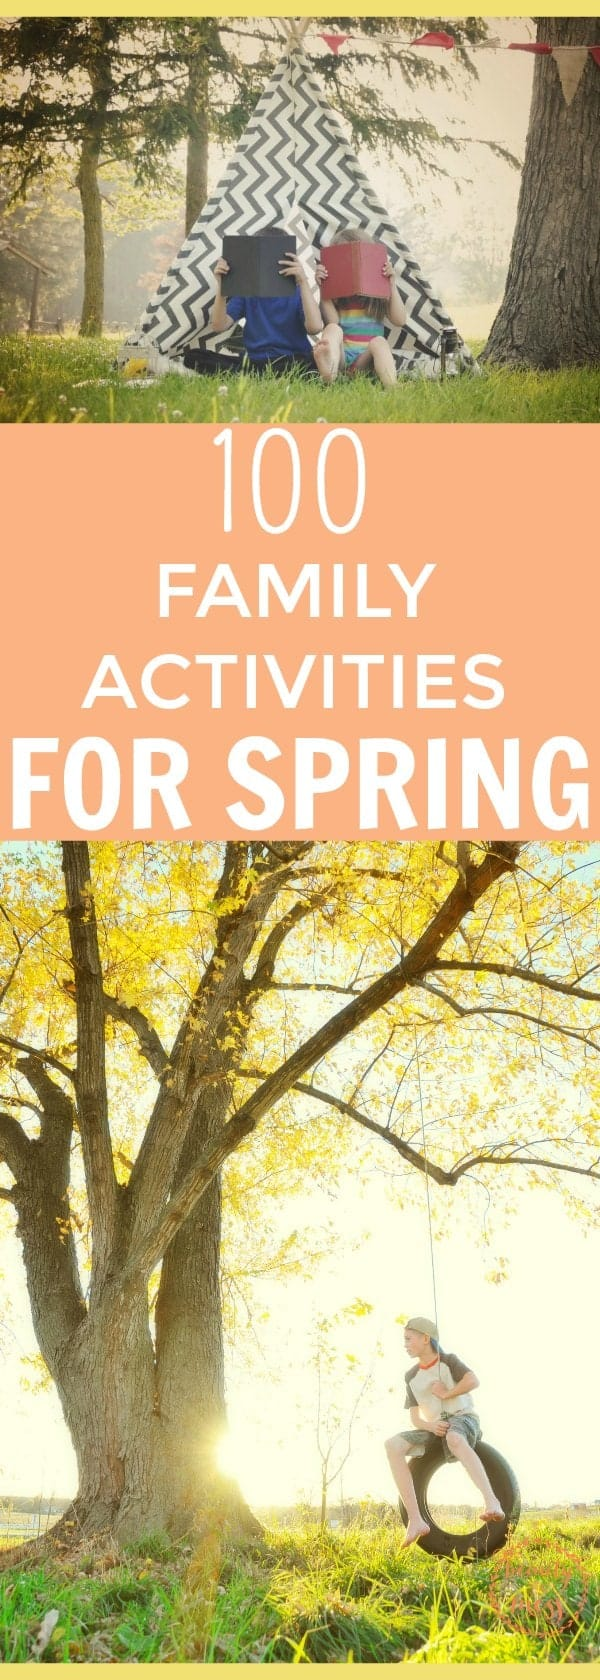 Spend intentional time with your family this Spring. Don't miss this list of 100 Spring activities you can do to #makememories with your family this season. #familytime #springhassprung #familytime #familytravel